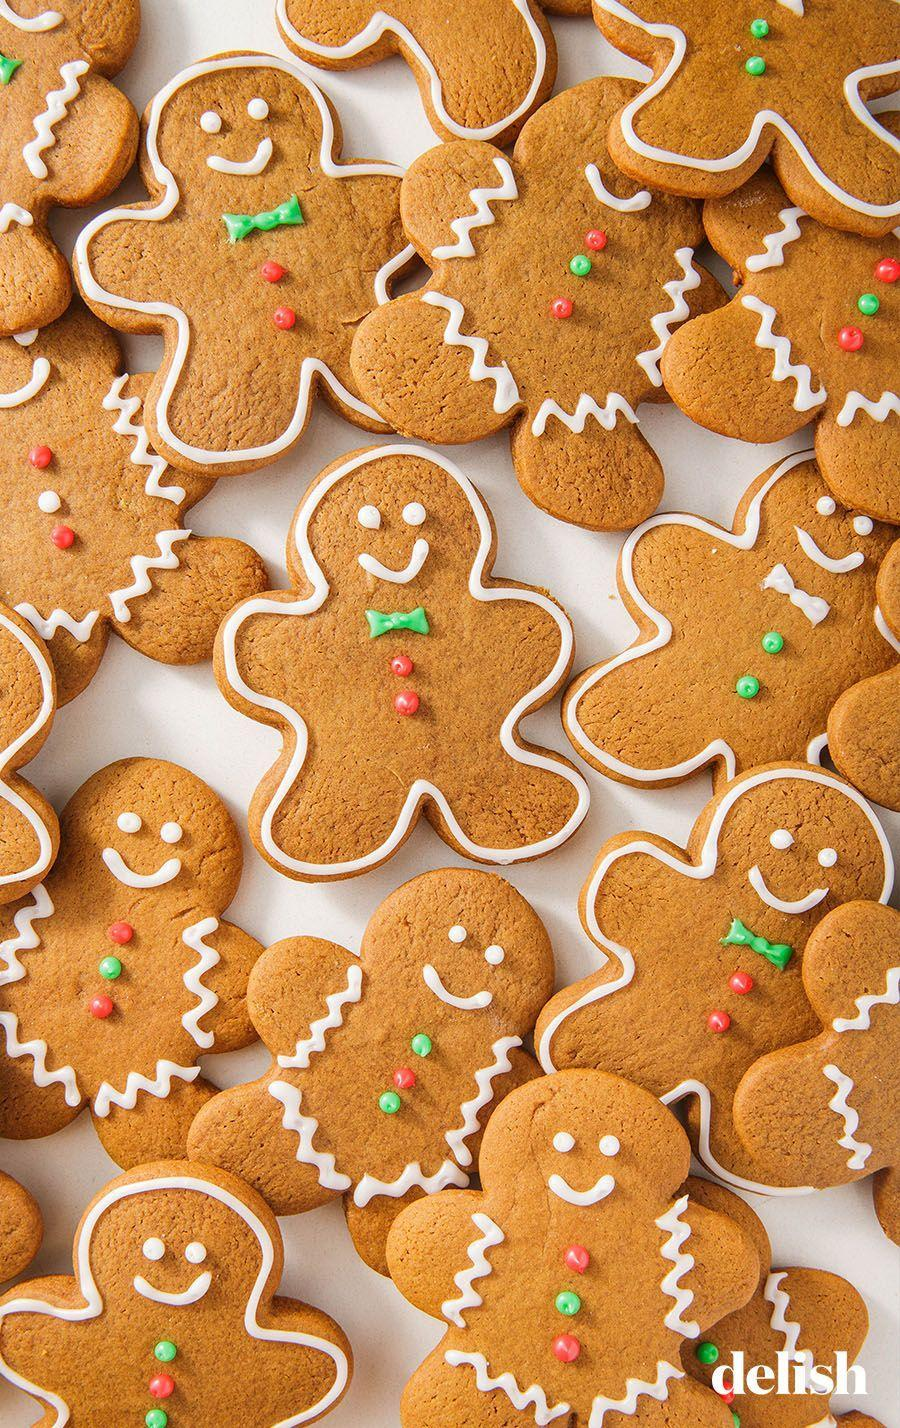 "<p>You can't let the holidays pass by without making gingerbread cookies at least once.</p><p>Get the recipe from <a href=""https://www.delish.com/cooking/recipes/a50468/gingerbread-cookies-recipe/"" rel=""nofollow noopener"" target=""_blank"" data-ylk=""slk:Delish"" class=""link rapid-noclick-resp"">Delish</a>.</p>"